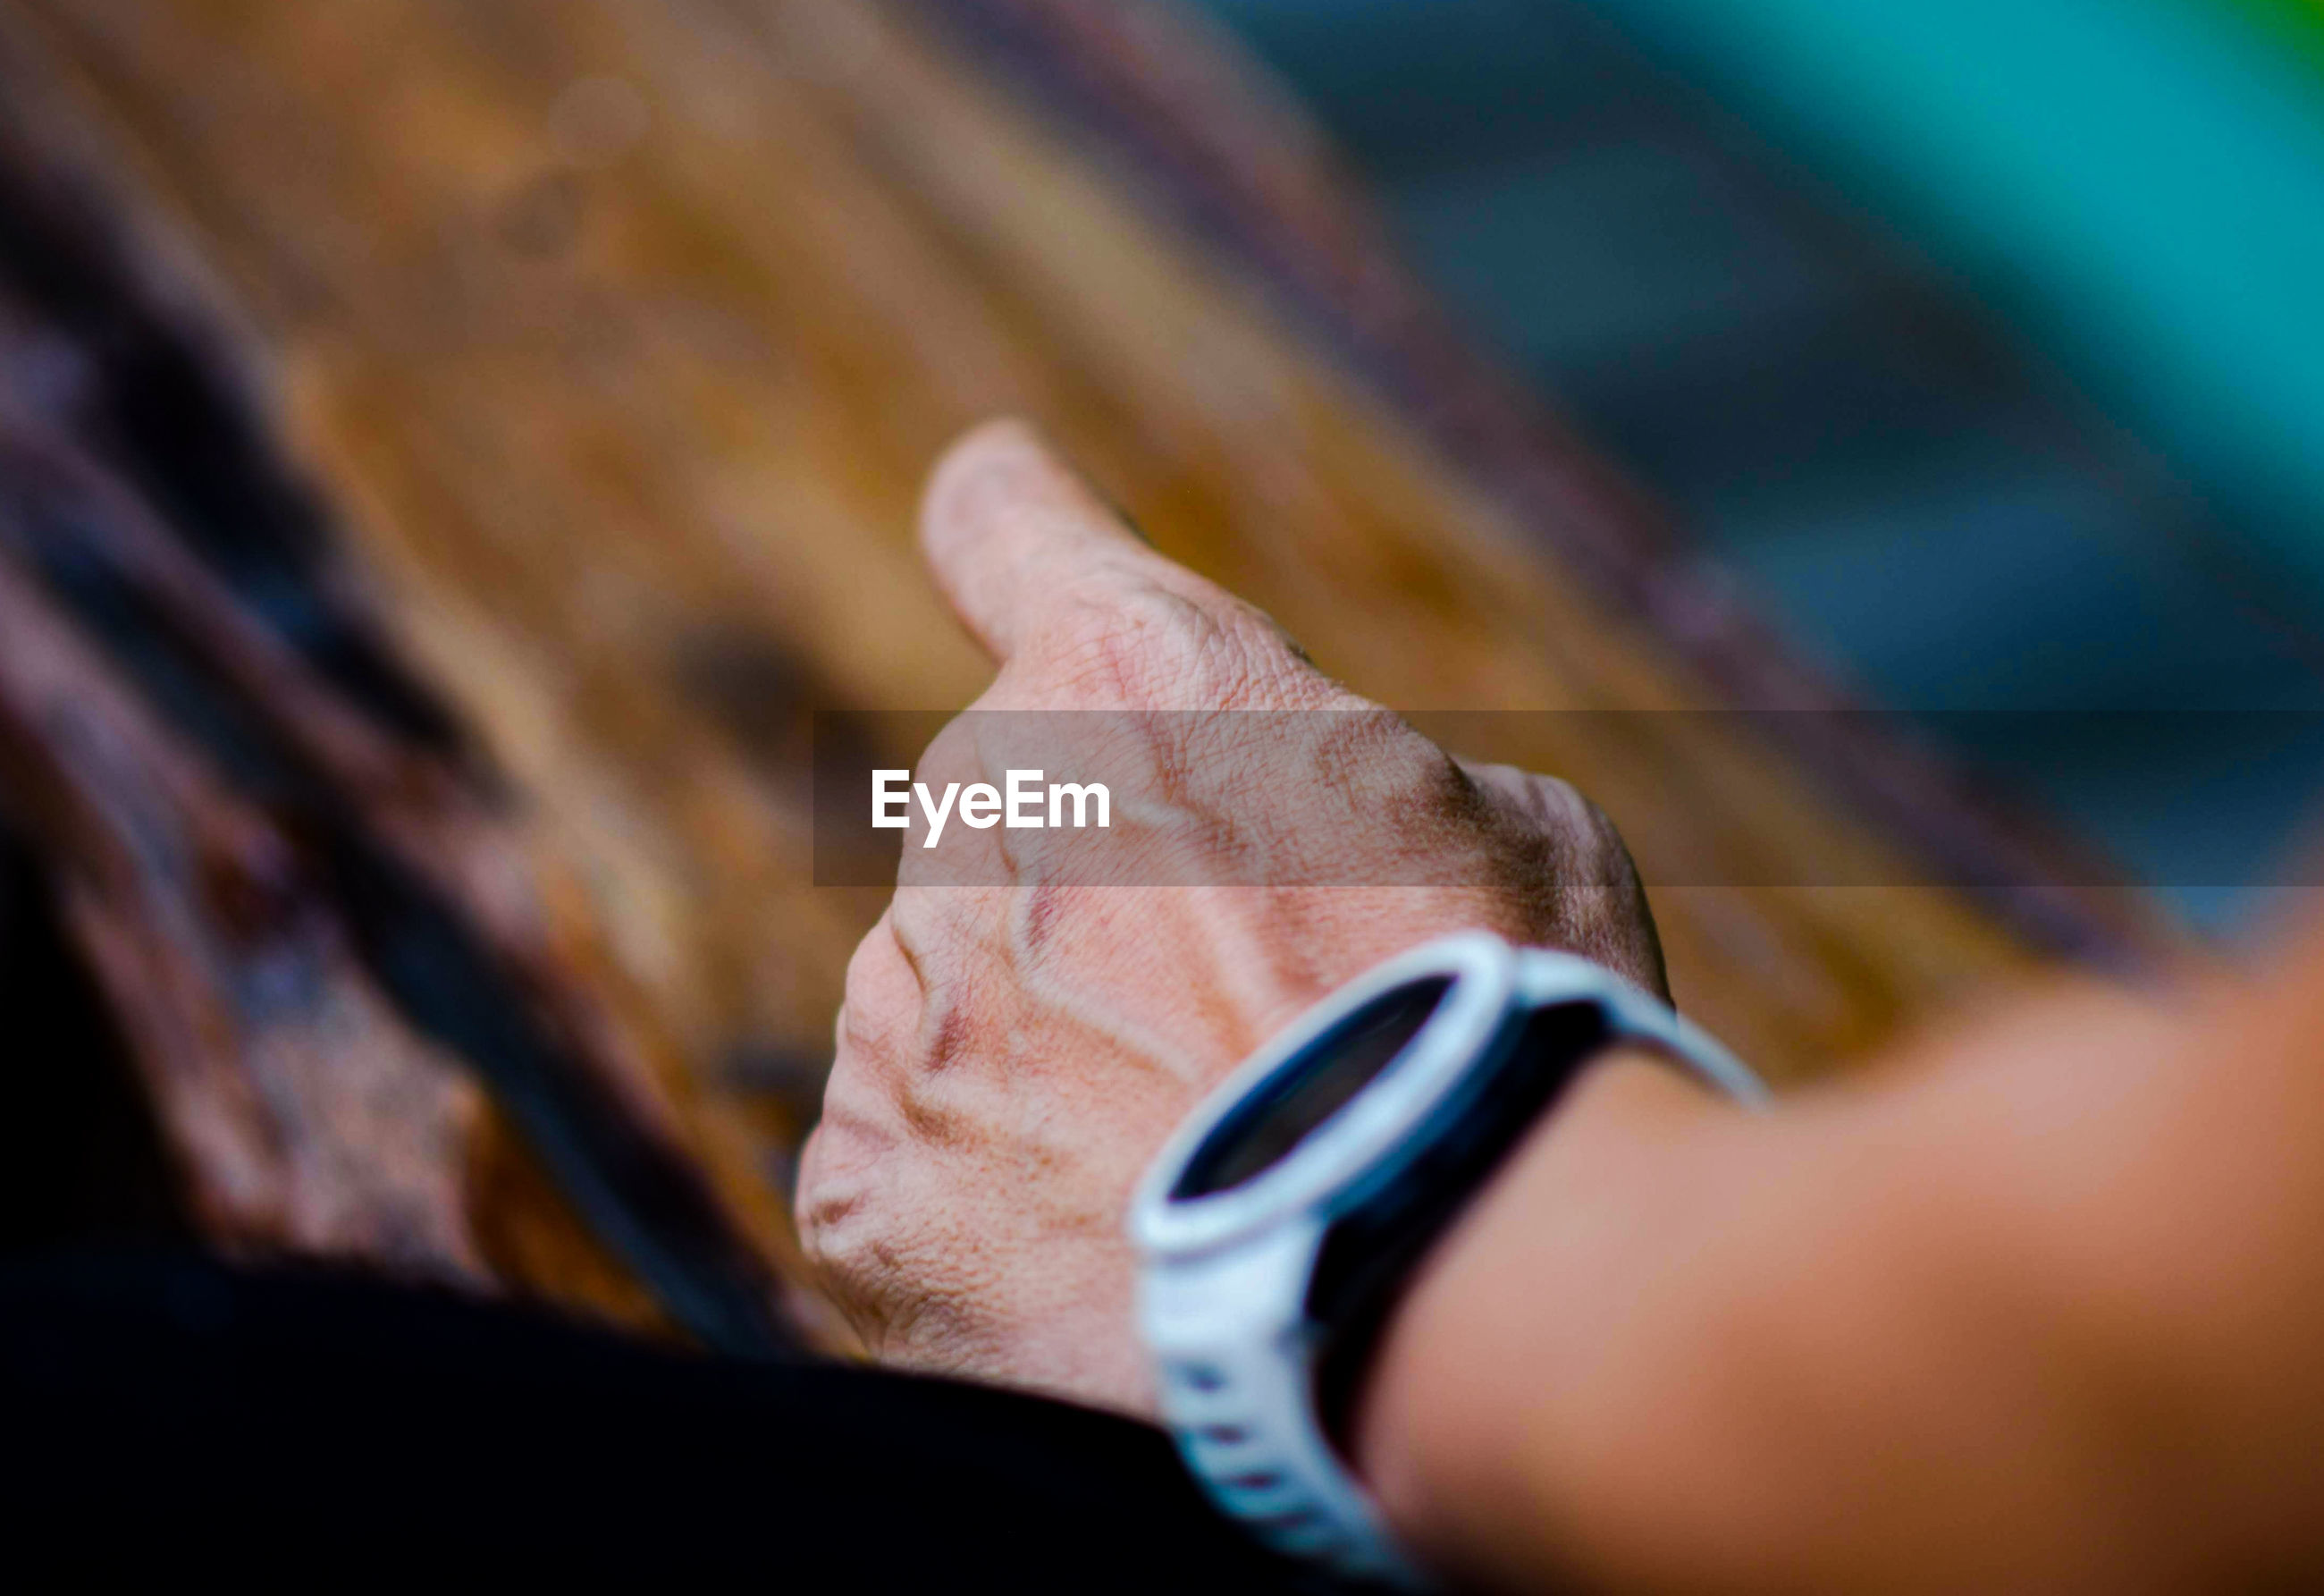 Close-up of person hand wearing wristwatch